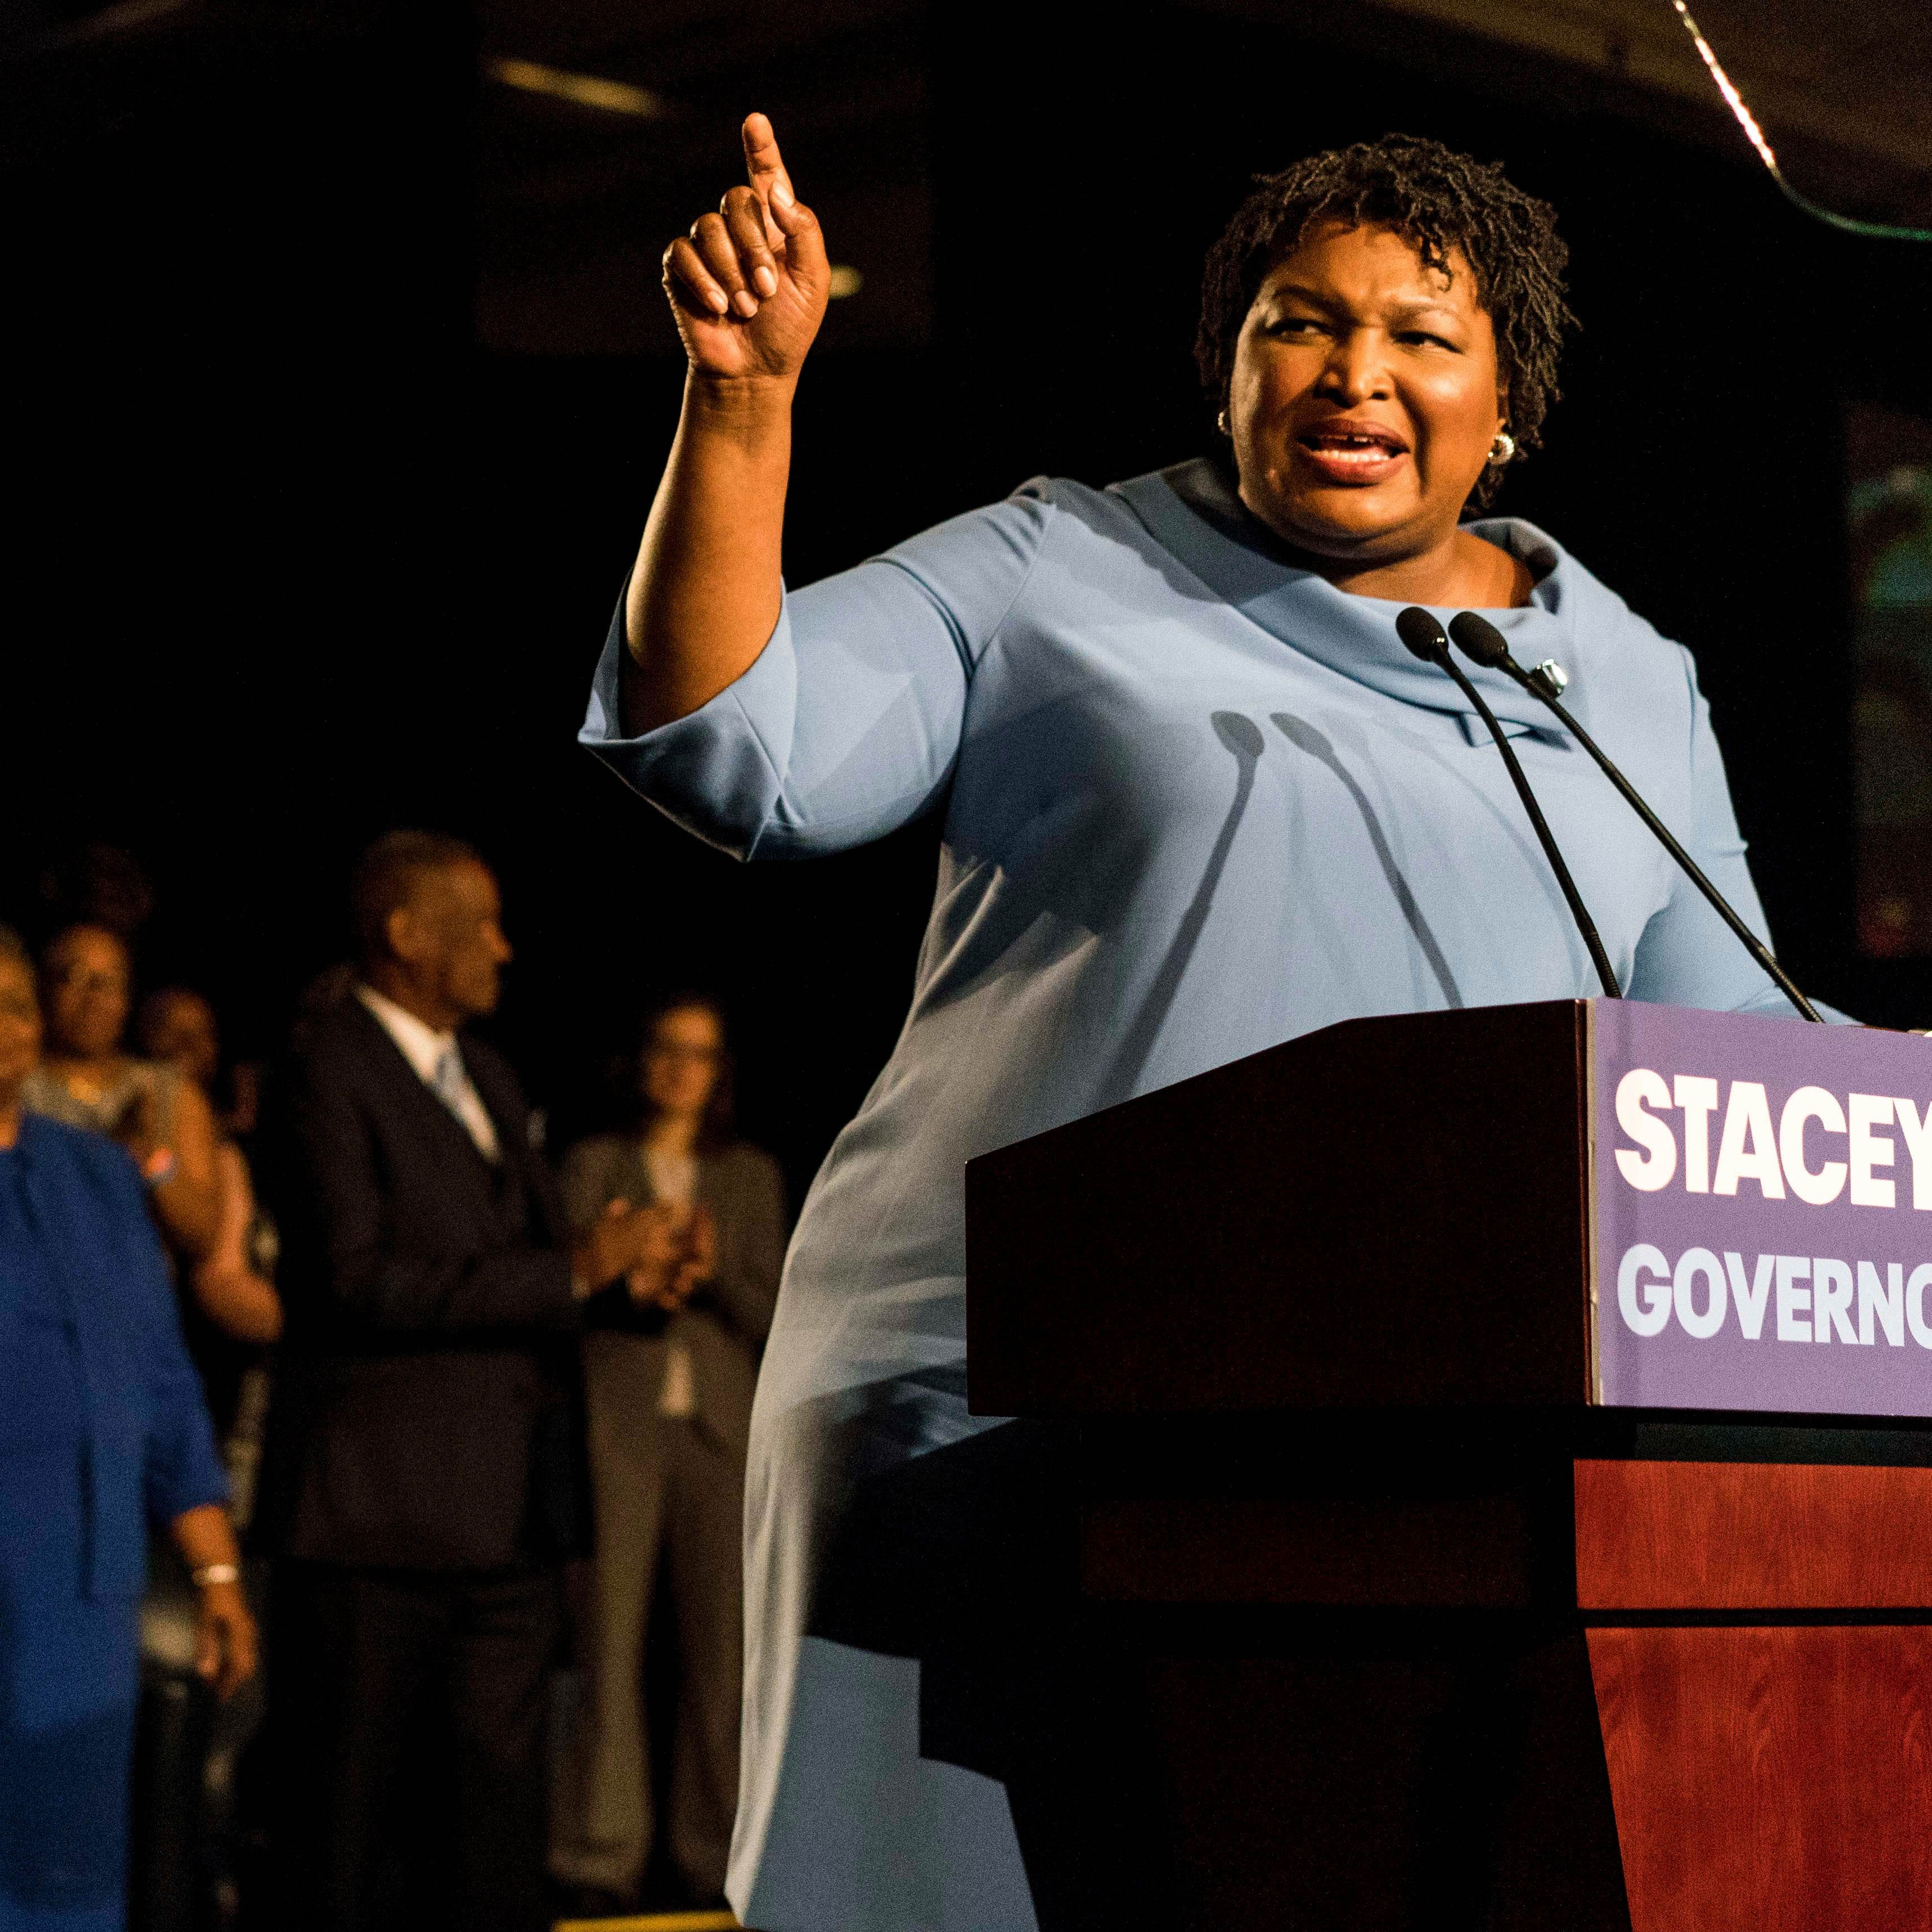 Stacey Abrams, who ran for governor of George as a Democrat in 2018, laid out a case for identity politics in a piece in Foreign Affairs .